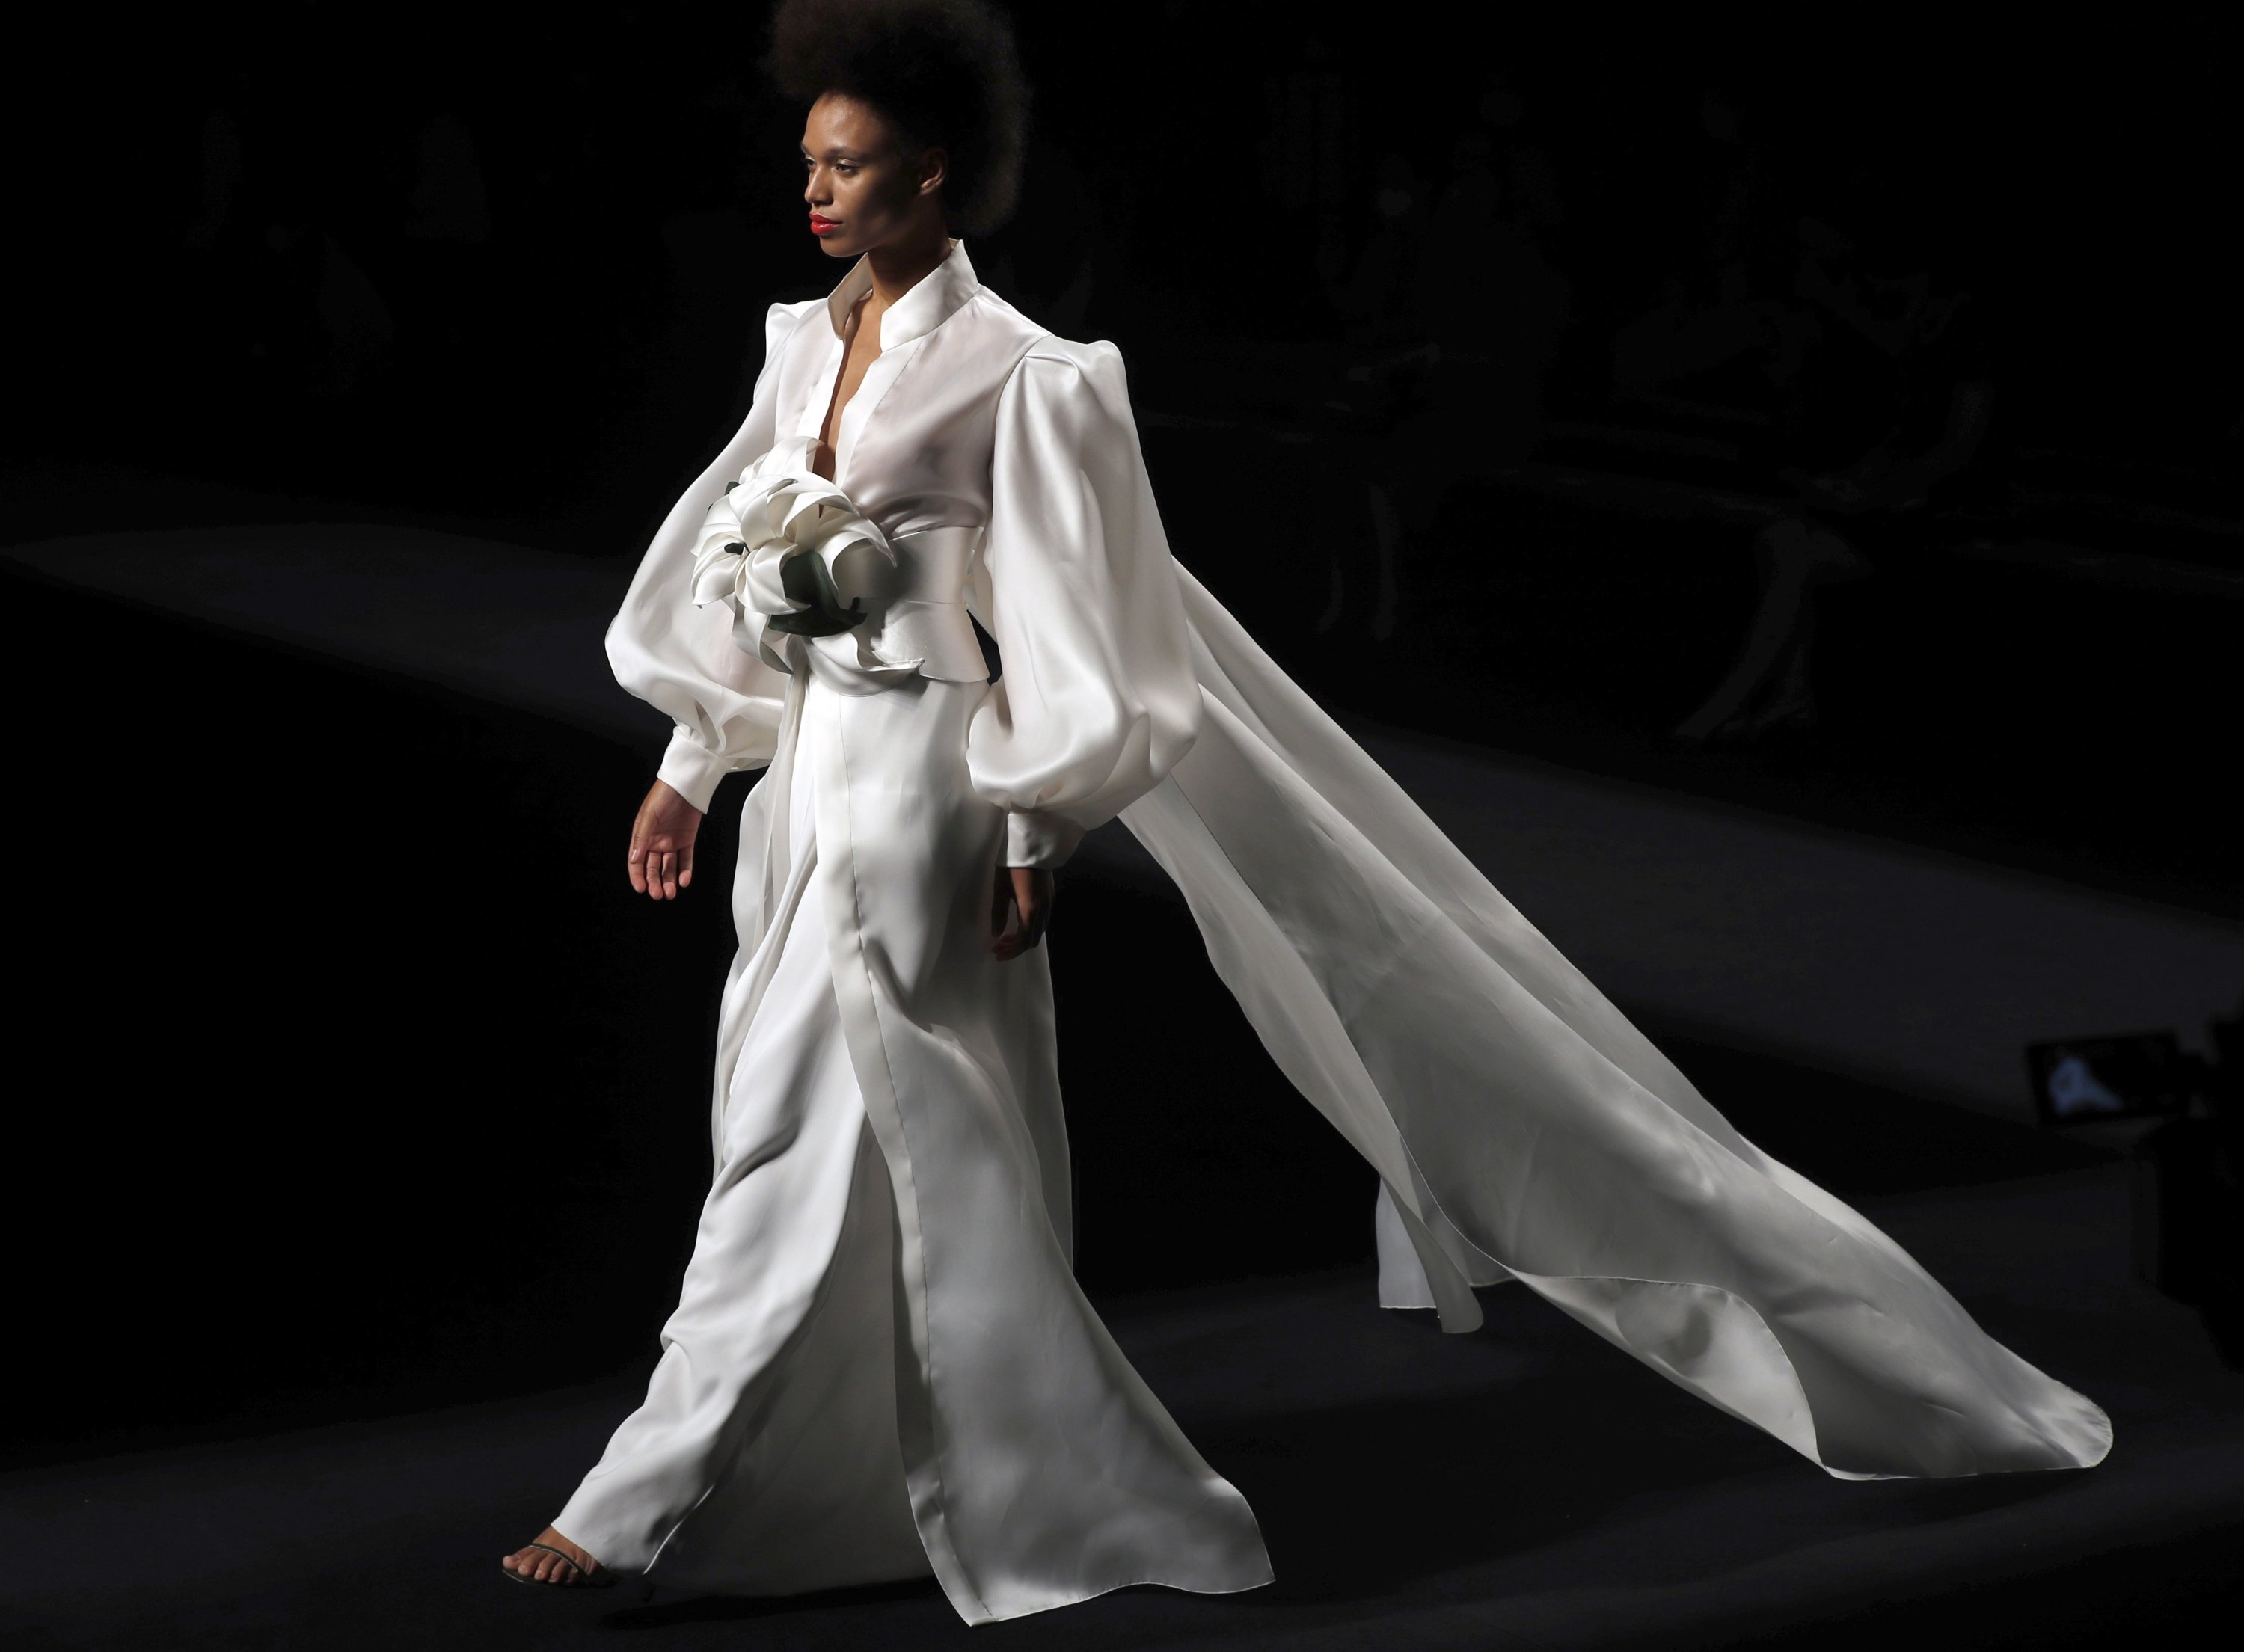 A model presents a creation by Spanish designer Marcos Luengo of the Spring/Summer 2021 season during the Mercedes-Benz Fashion Week Madrid, in Madrid, Spain, September 11, 2020. (EPA/JJ Guillen)